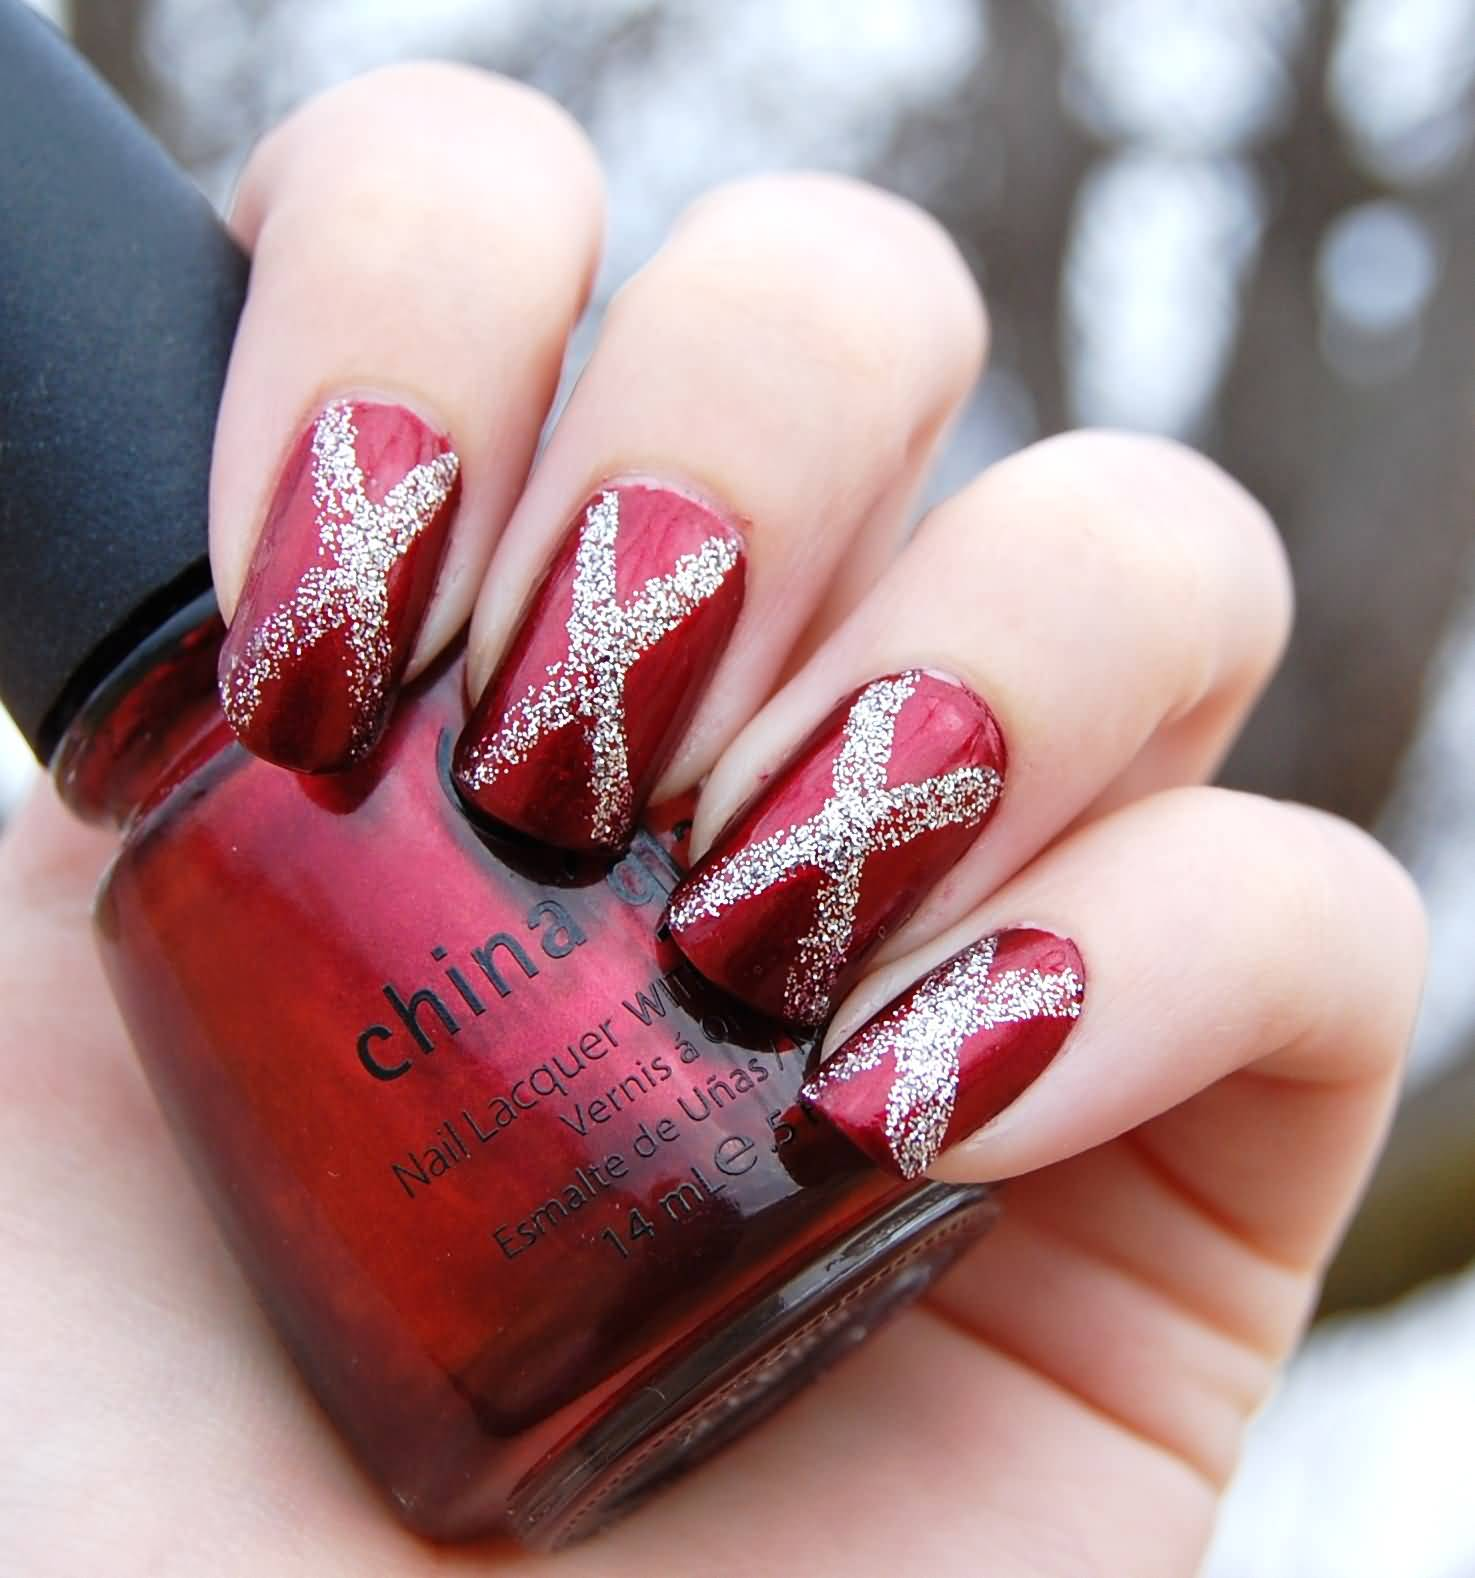 Amazing Cross Design On Nails Vignette - Nail Art Ideas - morihati.com